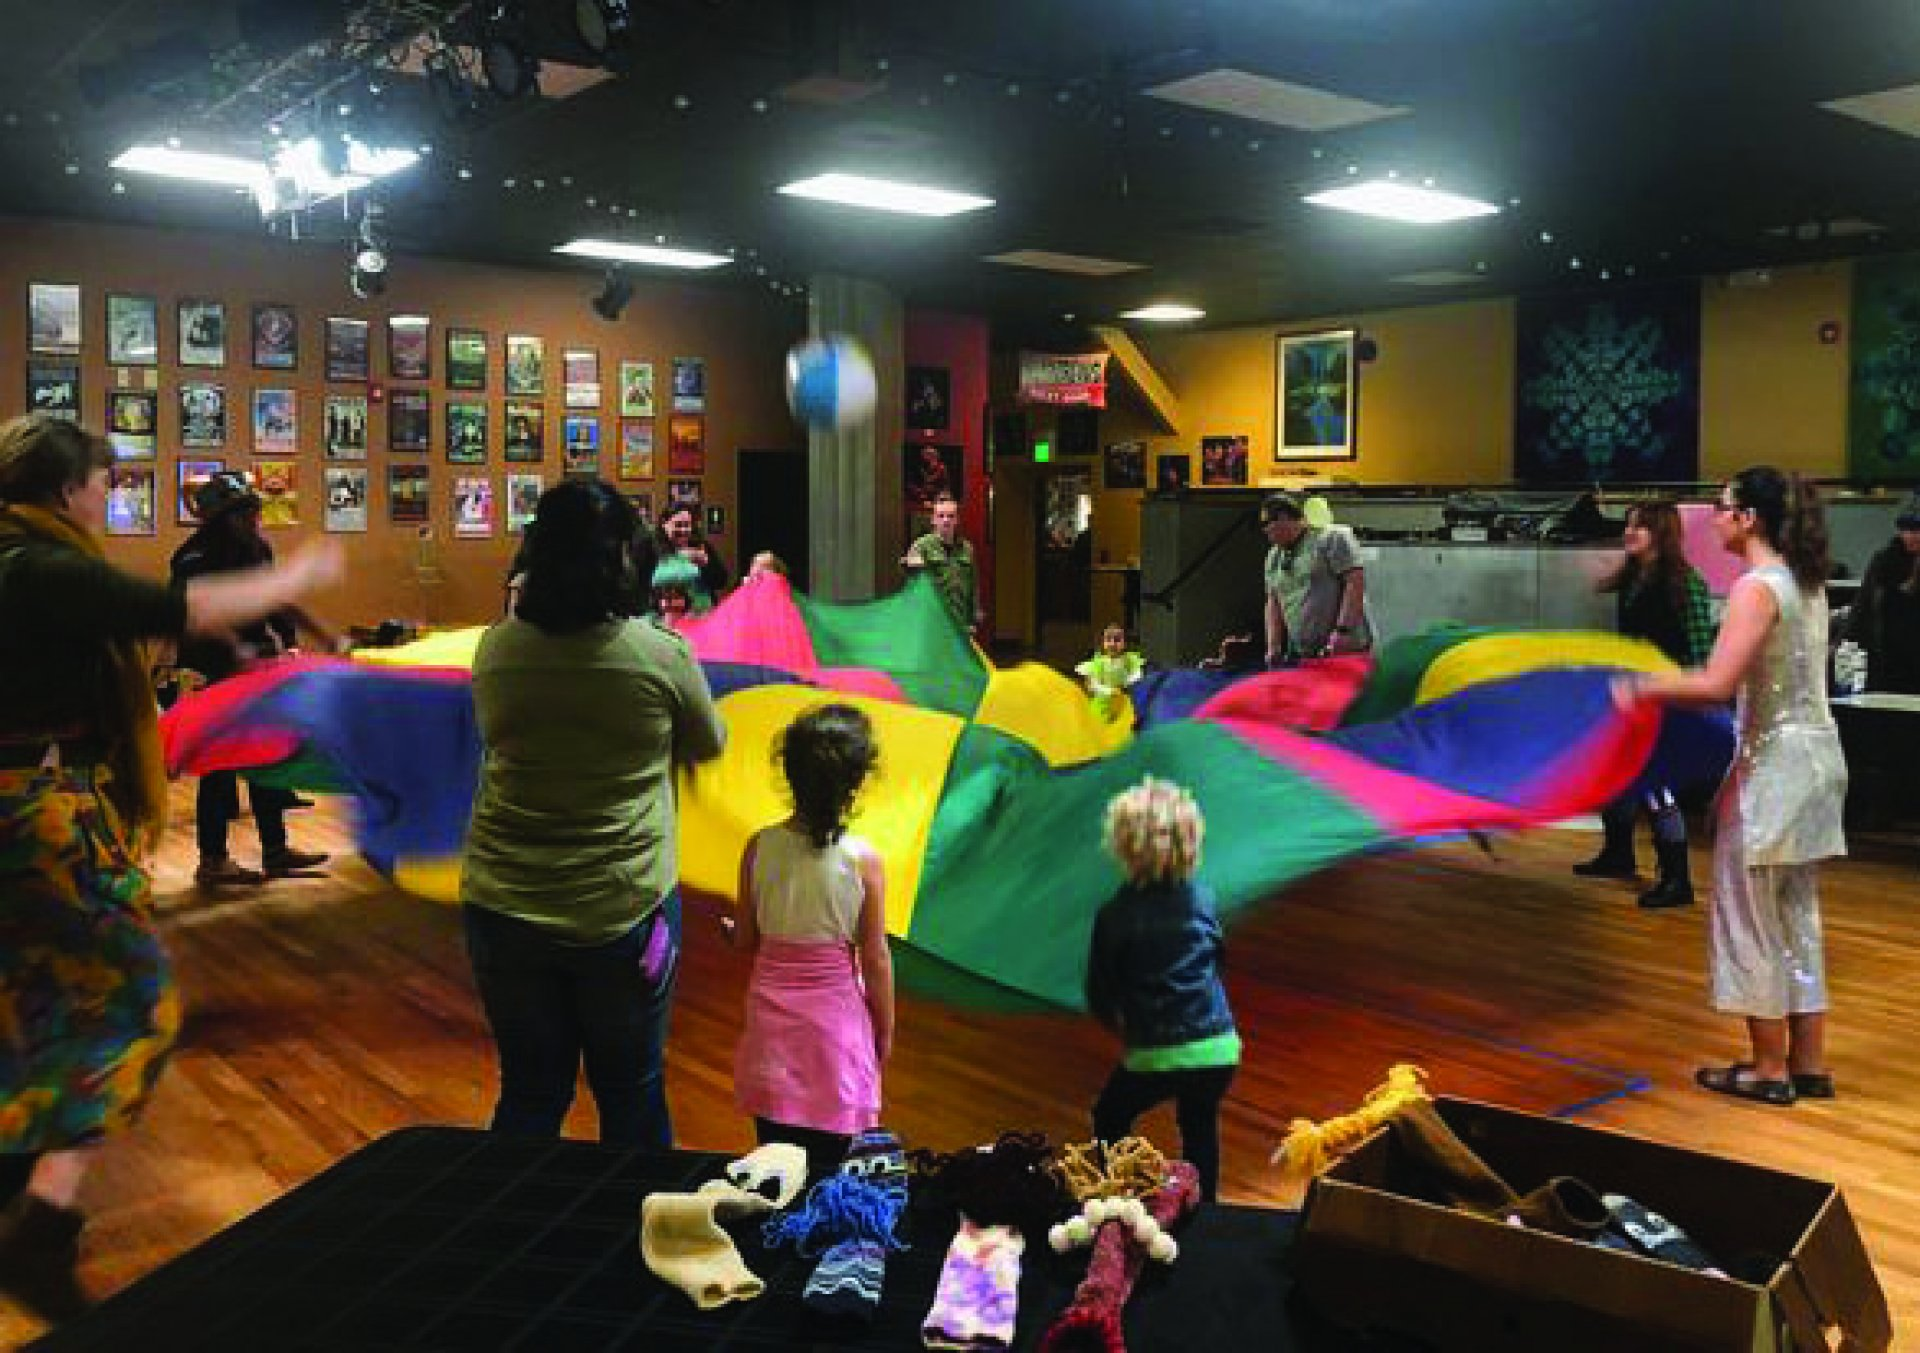 Gathering around to play games with a giant parachute was just one of the many activities the Humboldt Circus offered to the kids. March 17. | Photo by Skylar Gaven